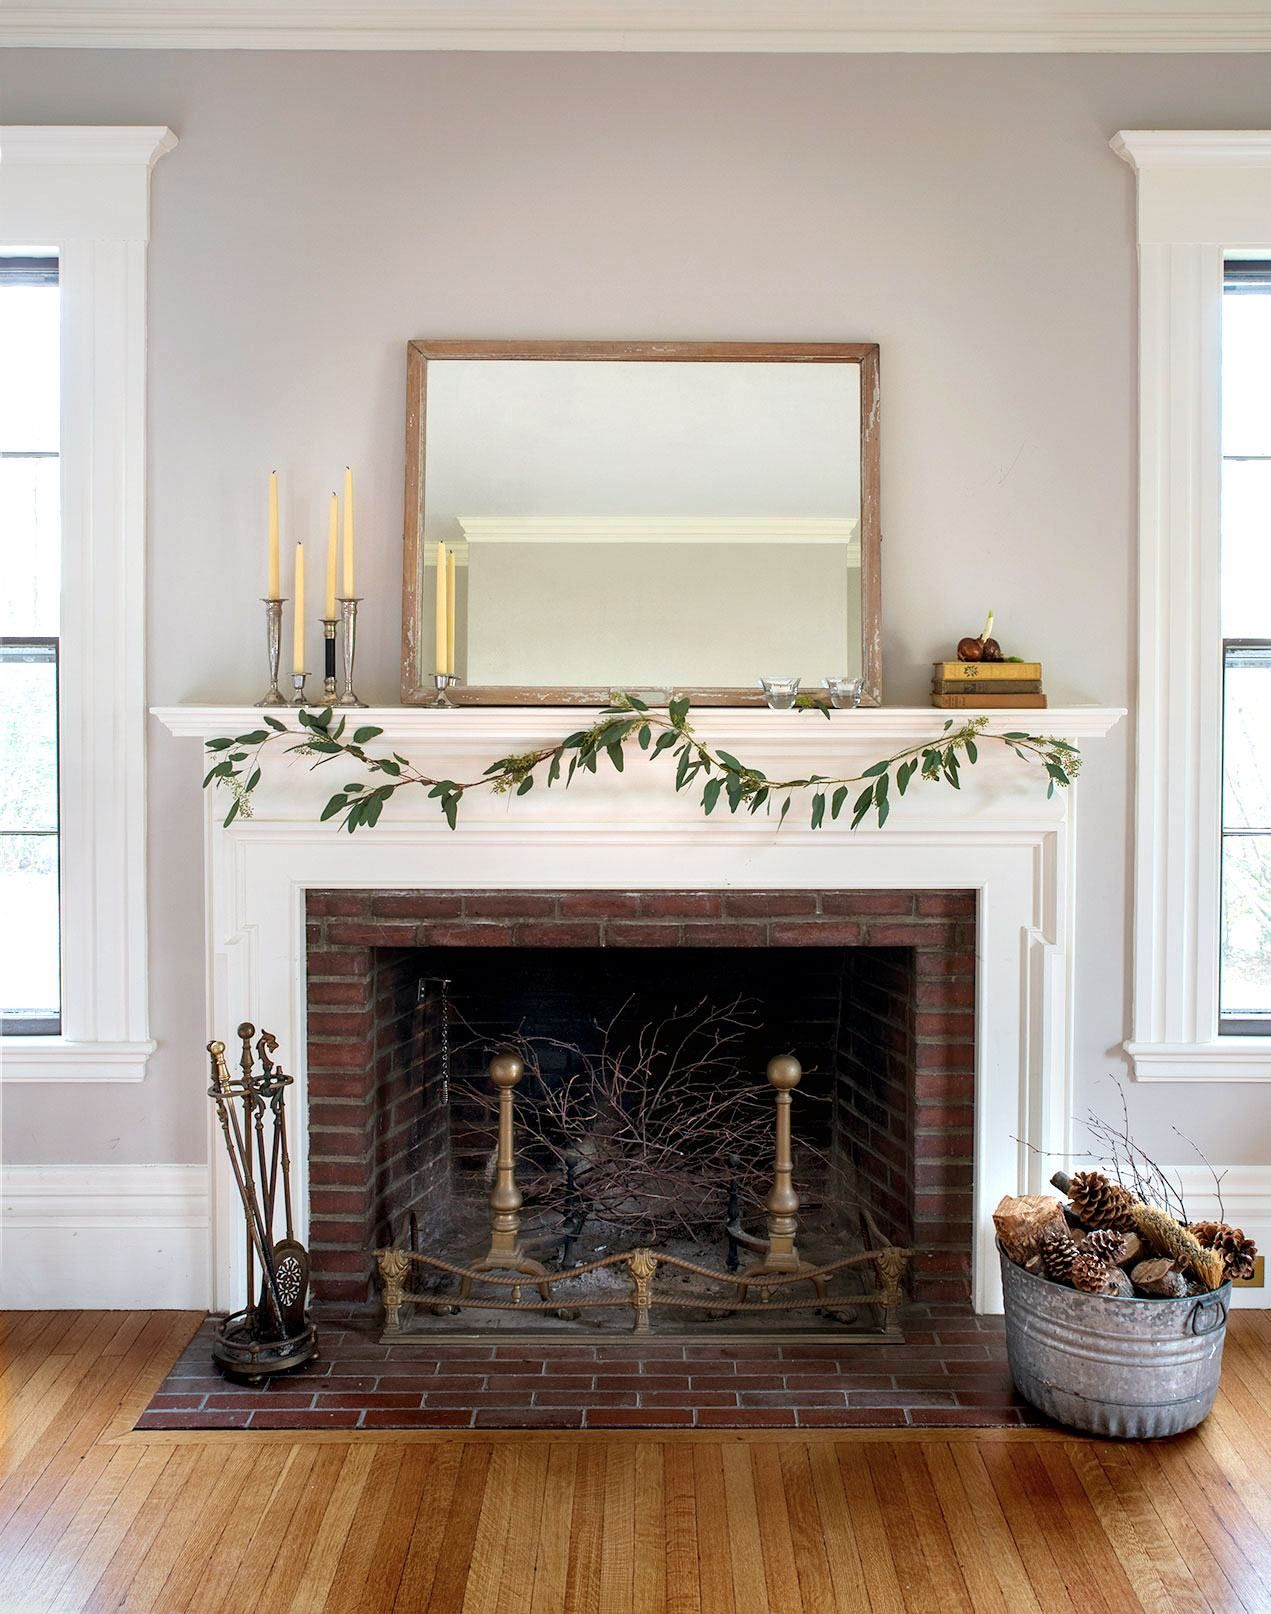 Diy Minimalist Holiday Mantel 10 Edition Remodel